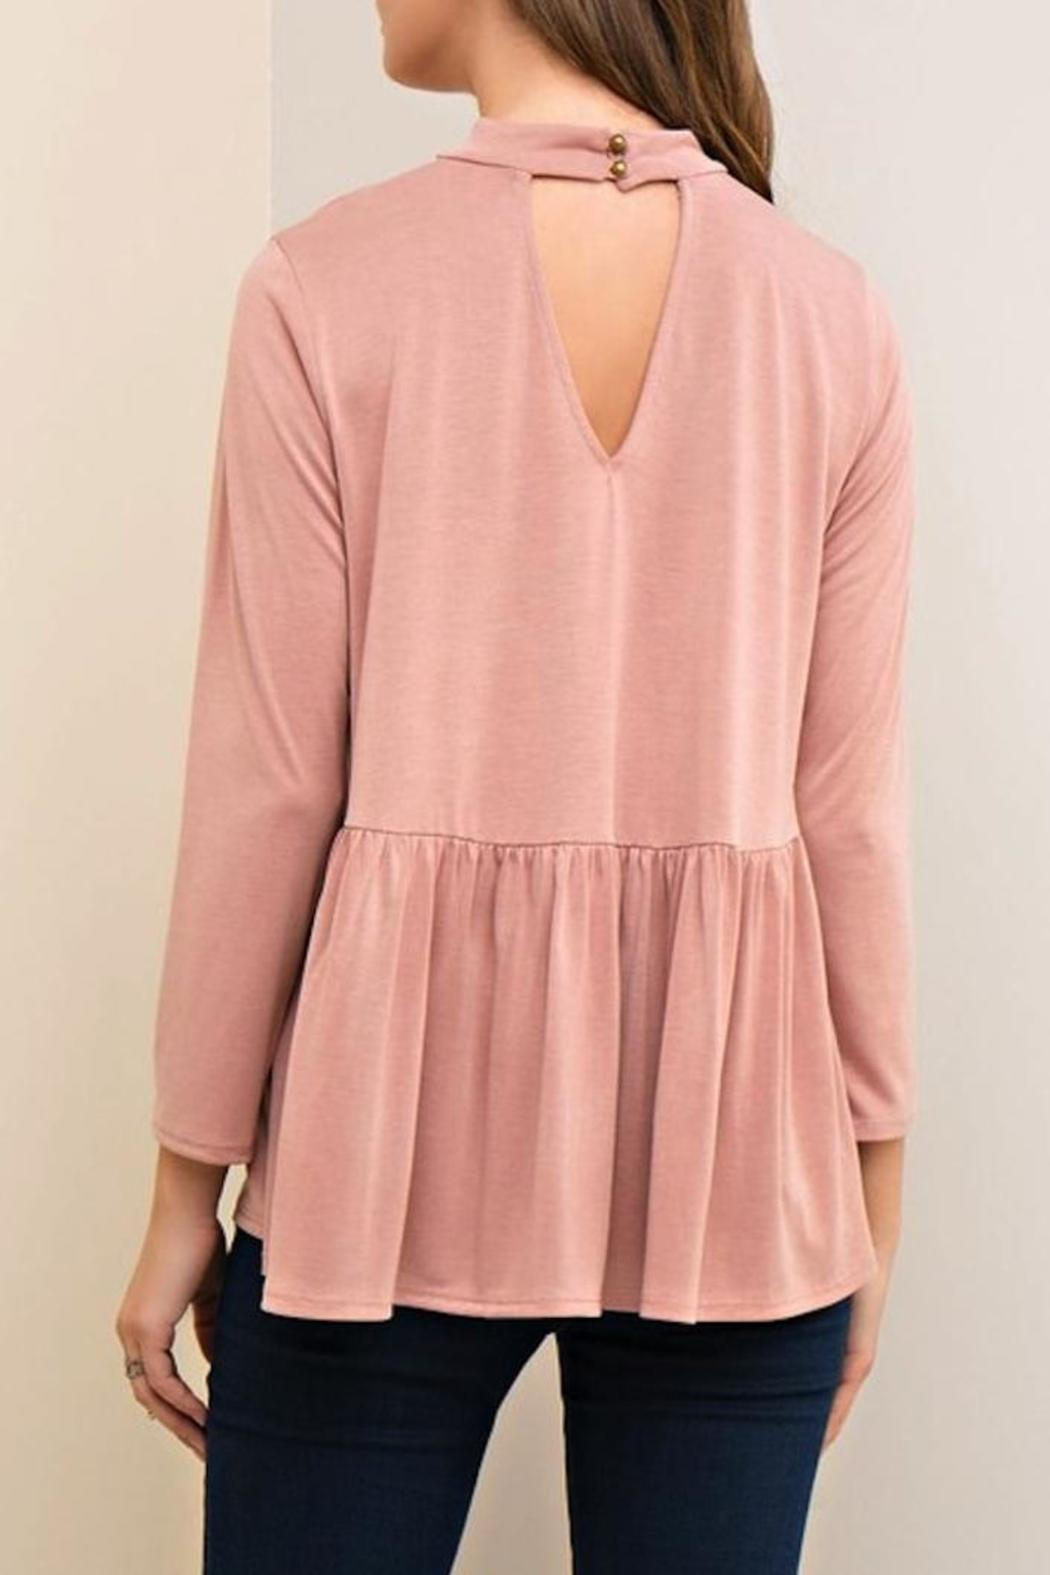 Yipsy Mockneck Peplum Top - Front Full Image